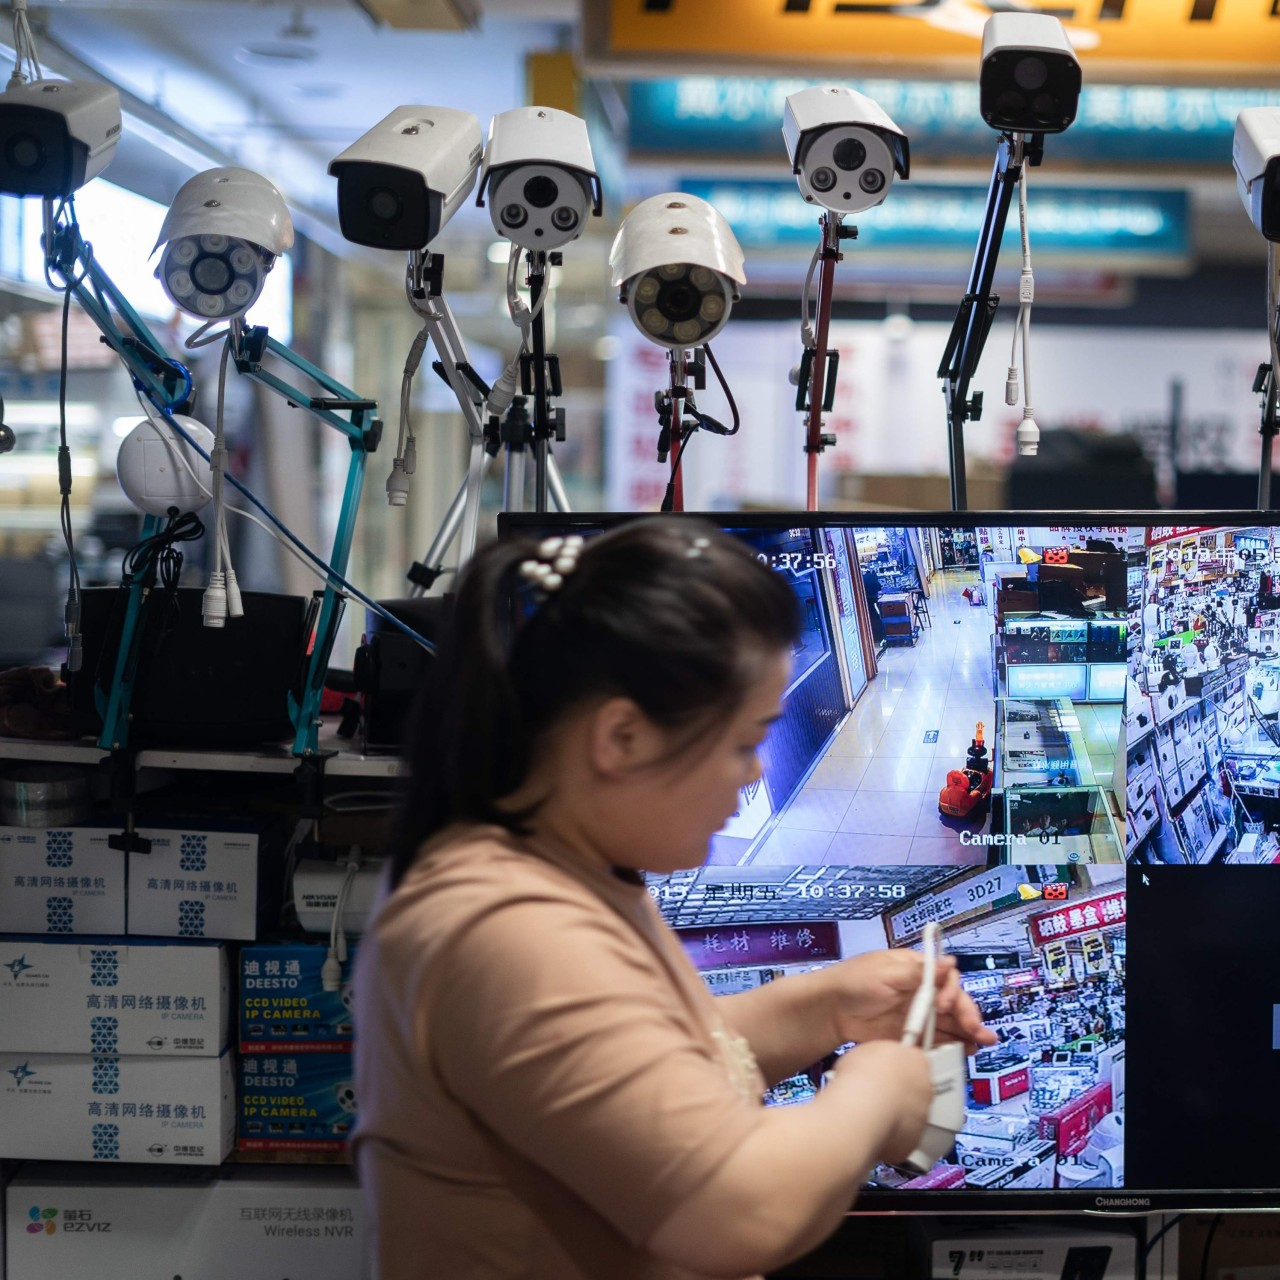 In China, Big Brother is watching you even as you sort your trash